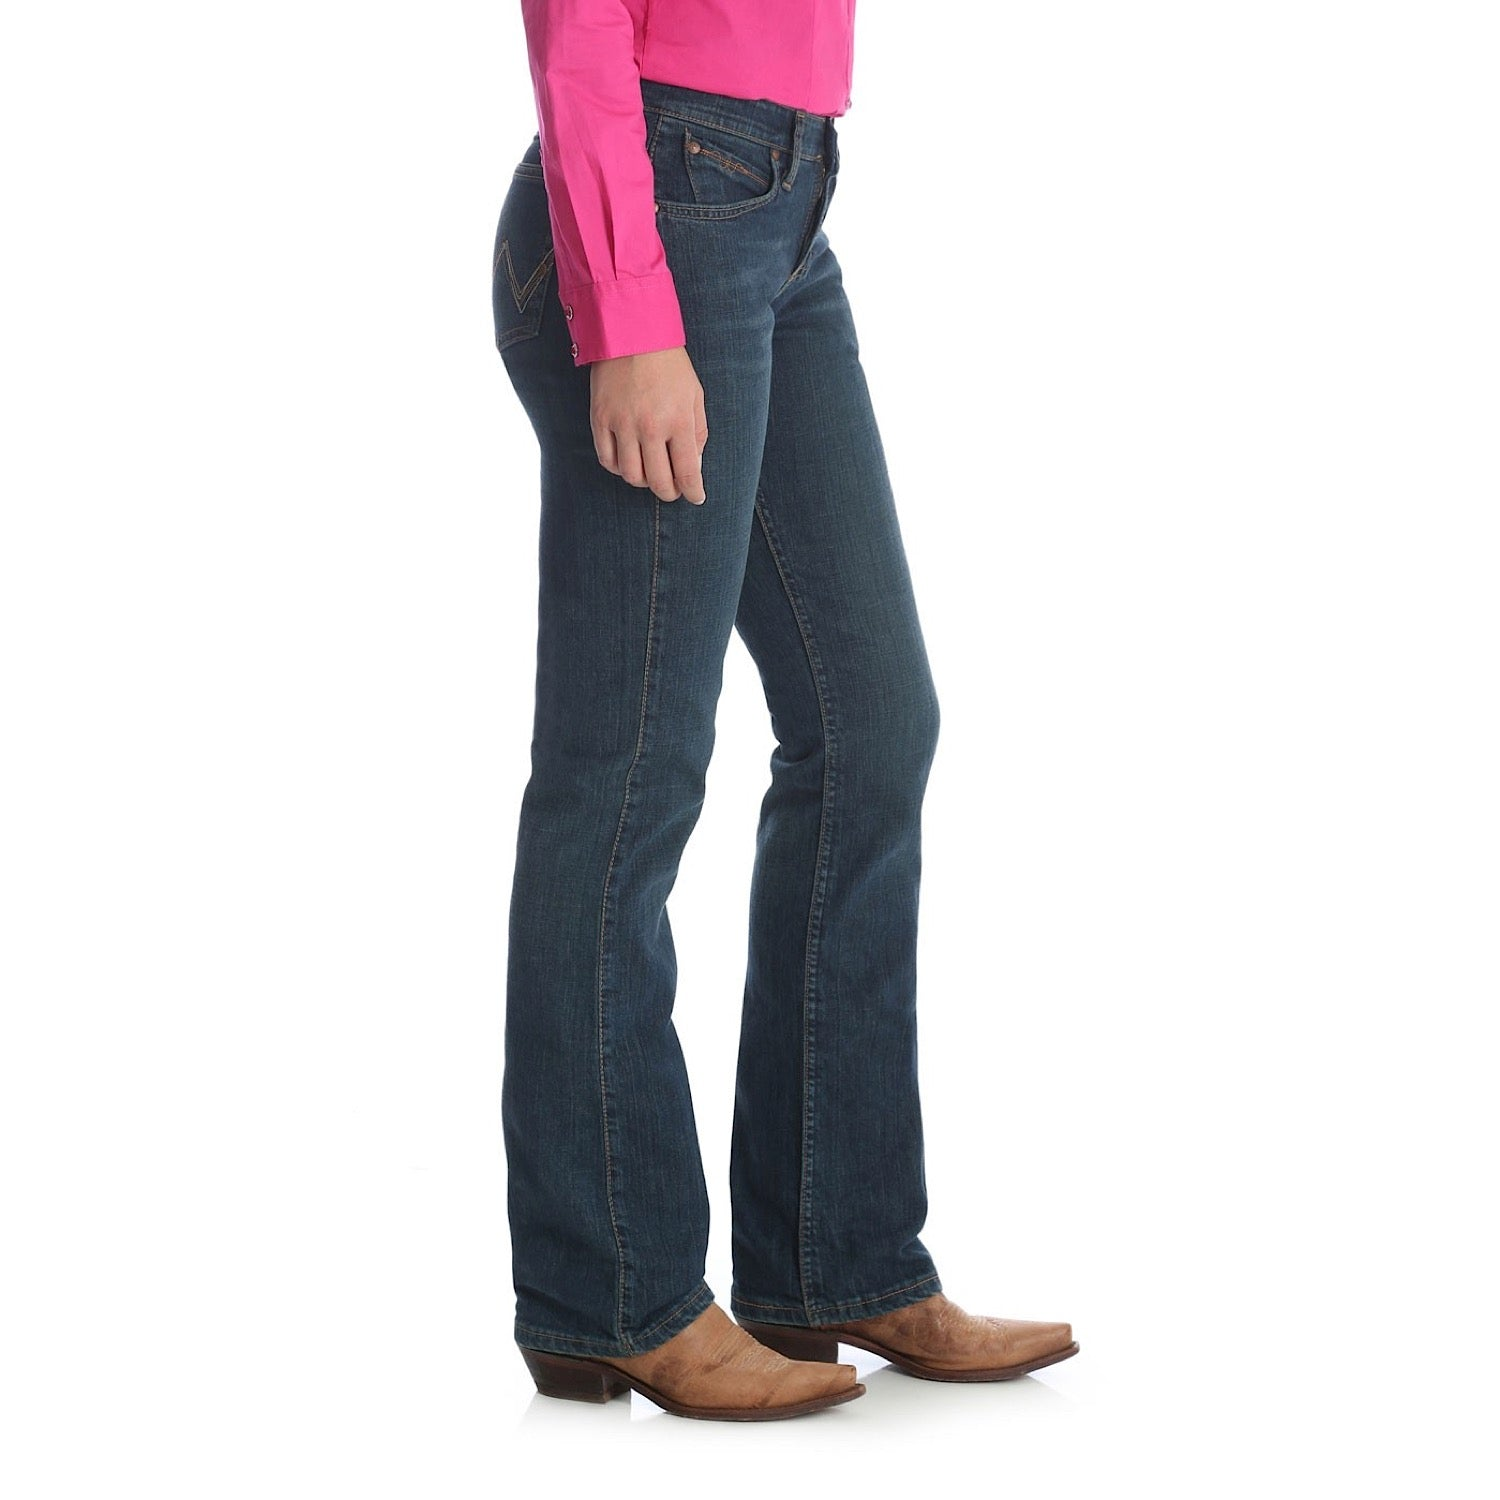 c122d6fe Ladies Q-Baby Ultimate Riding Jean Sits Below Waist, Tuff Buck WRQ20TB.  Size Charts. undefined. WRANGLER MENS WEAR